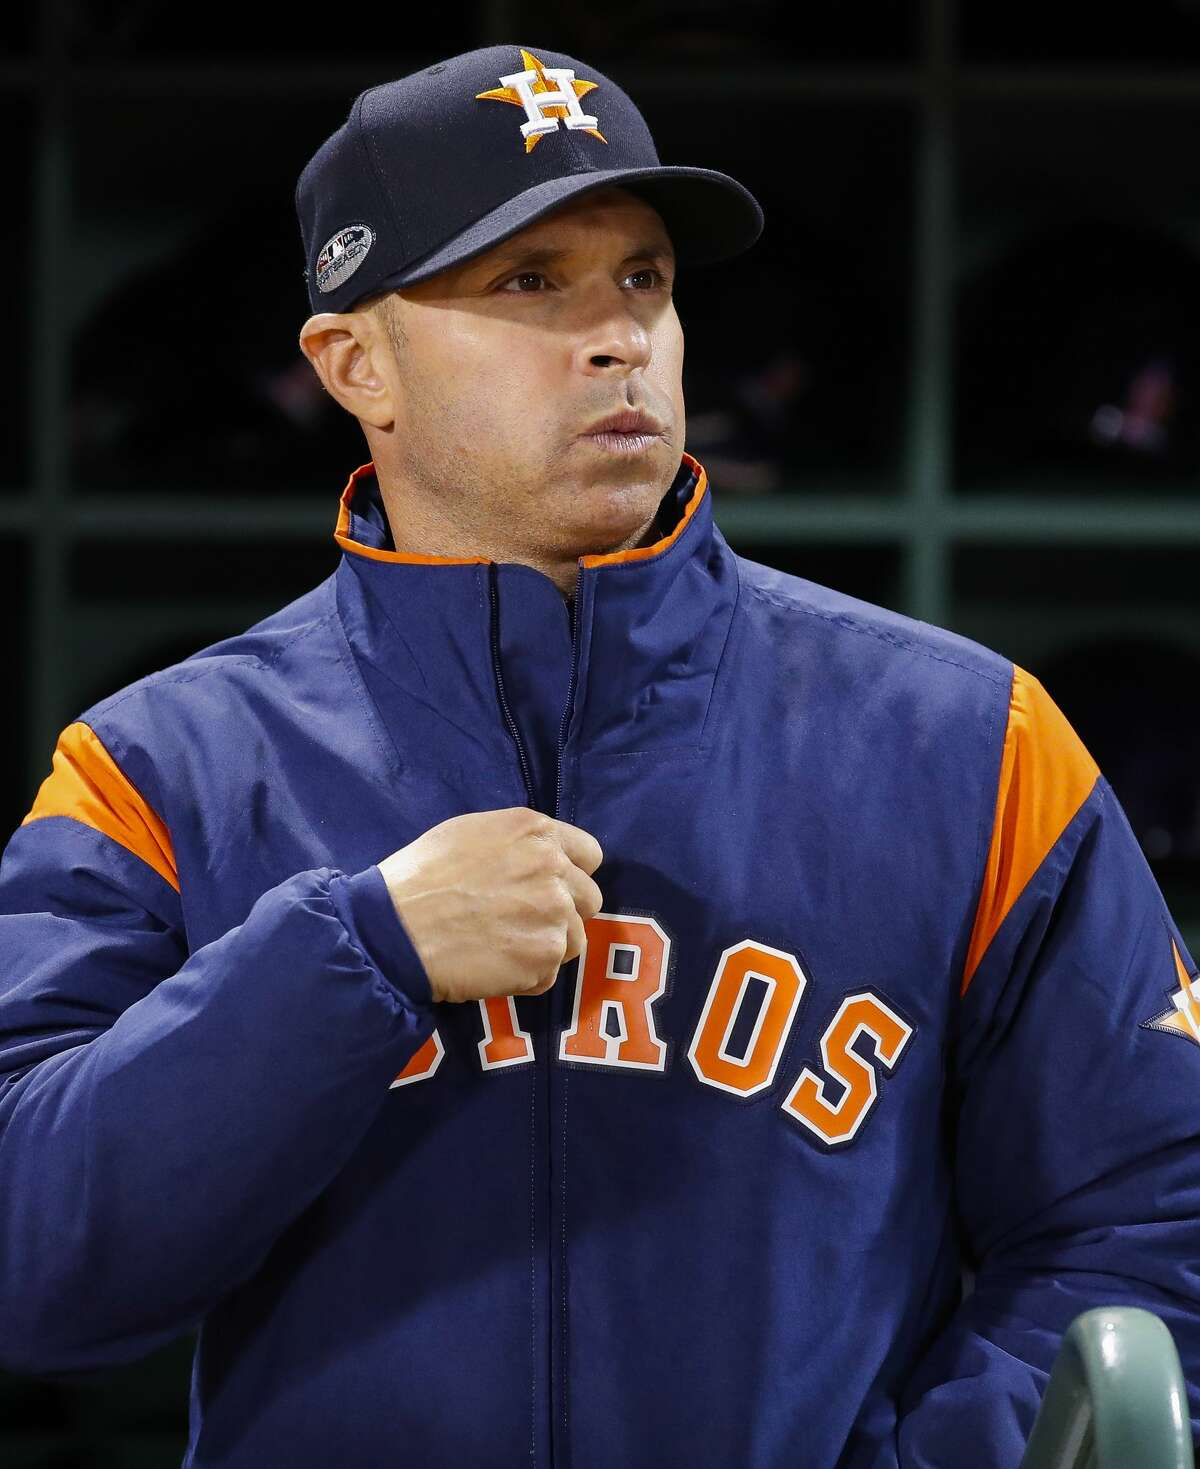 Houston Astros bench coach Joe Espada (20) prepares for the start of Game 2 of the American League Championship Series at Fenway Park on Sunday, Oct. 14, 2018, in Boston.